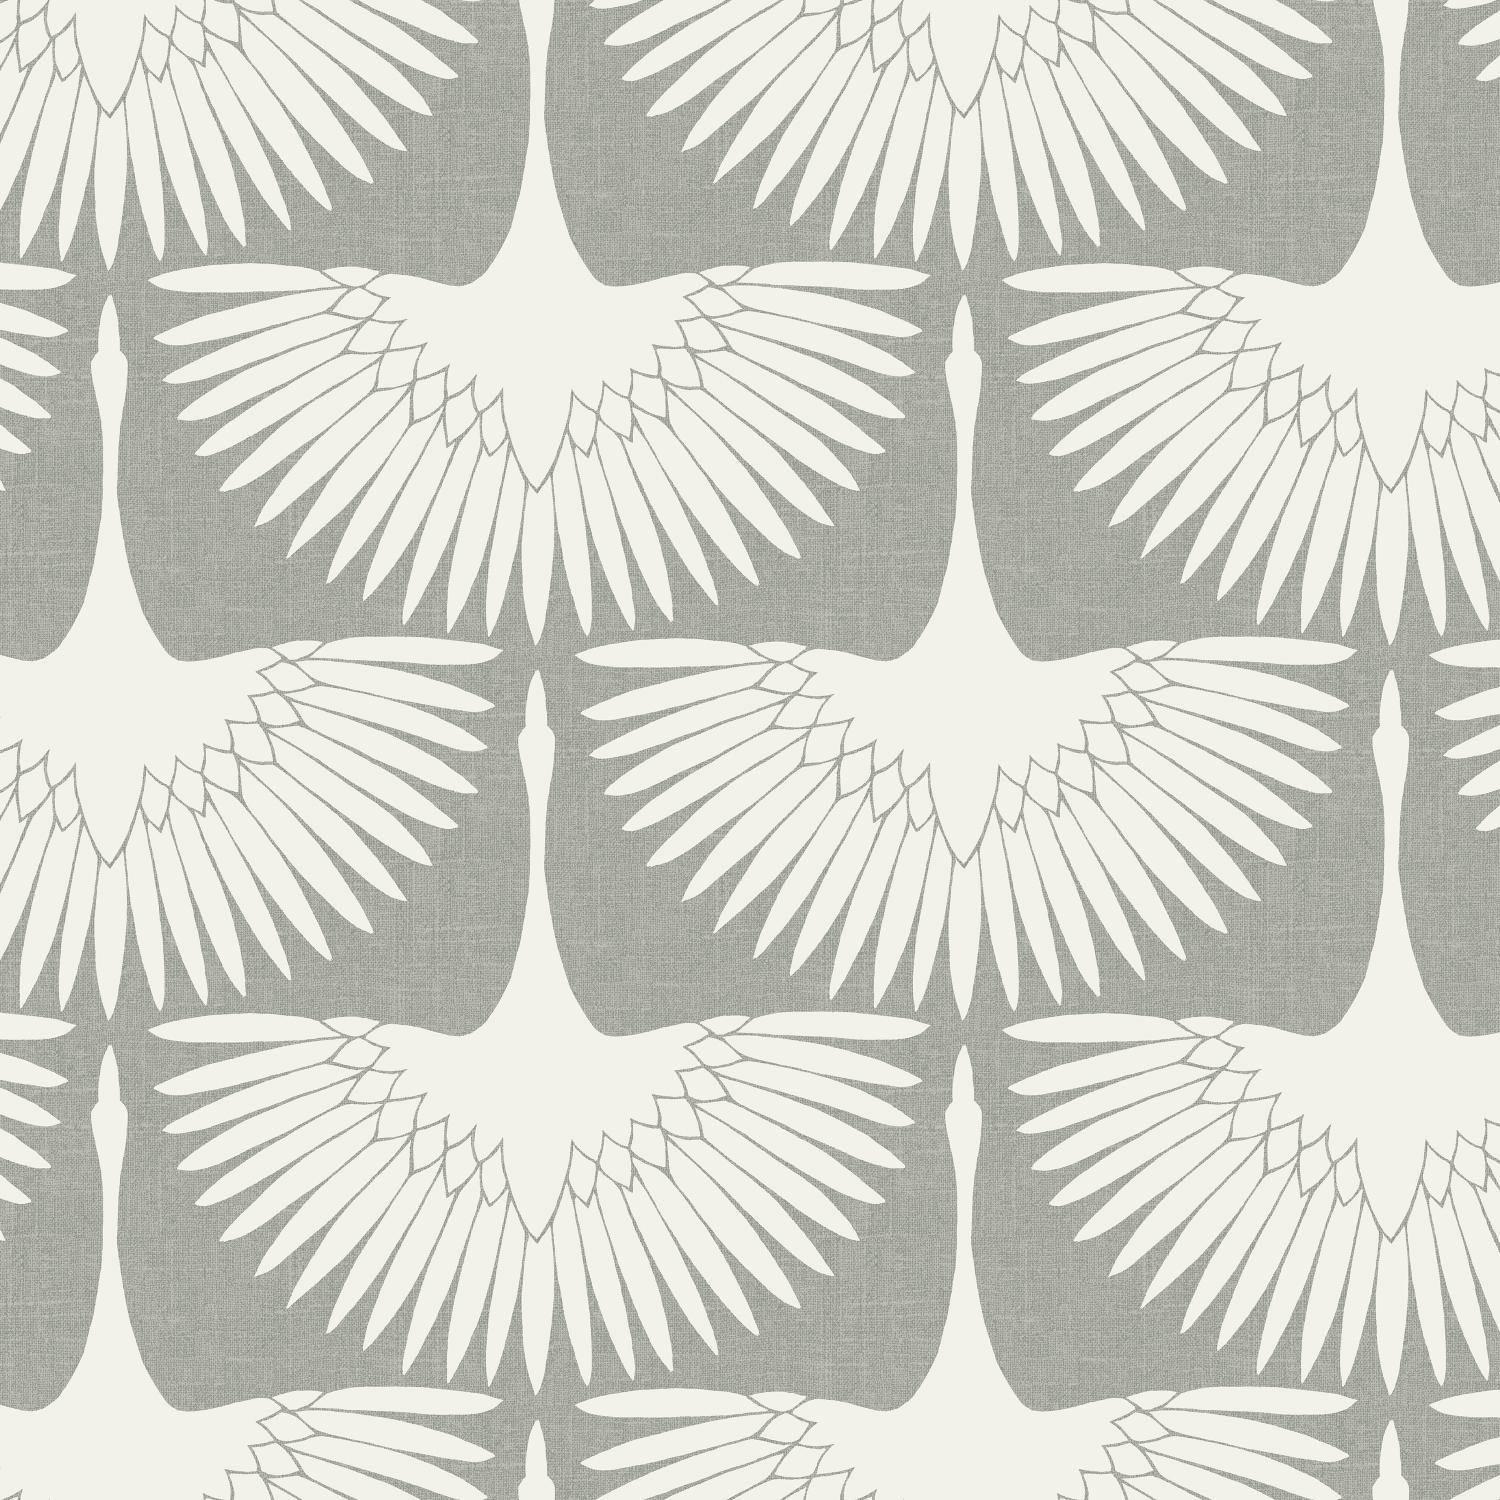 Genevieve Gorder Feather Flock Chalk Peel and Stick Wallpaper-LIFESTYLE-Maker & Moss